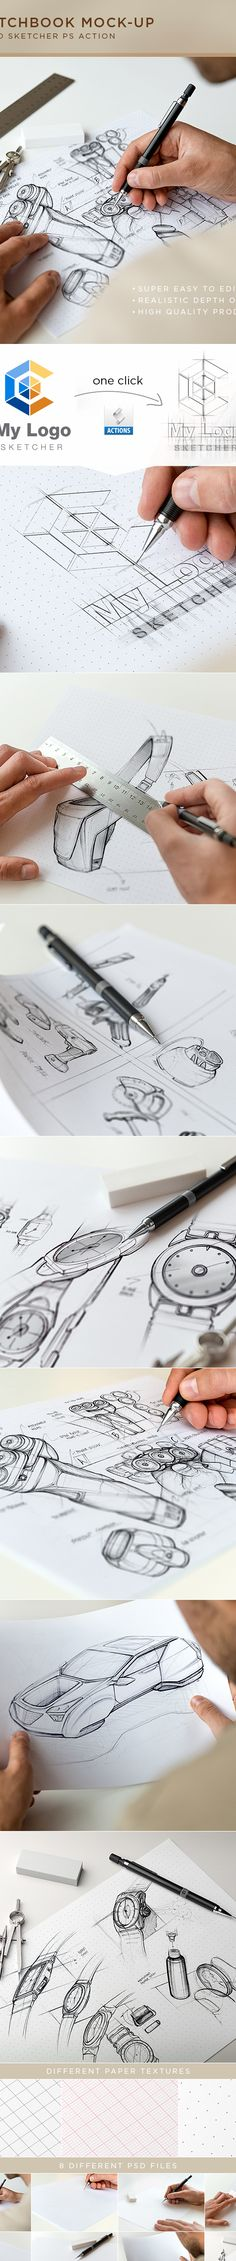 https://www.behance.net/gallery/15354071/Sketchbook-Mock-Up